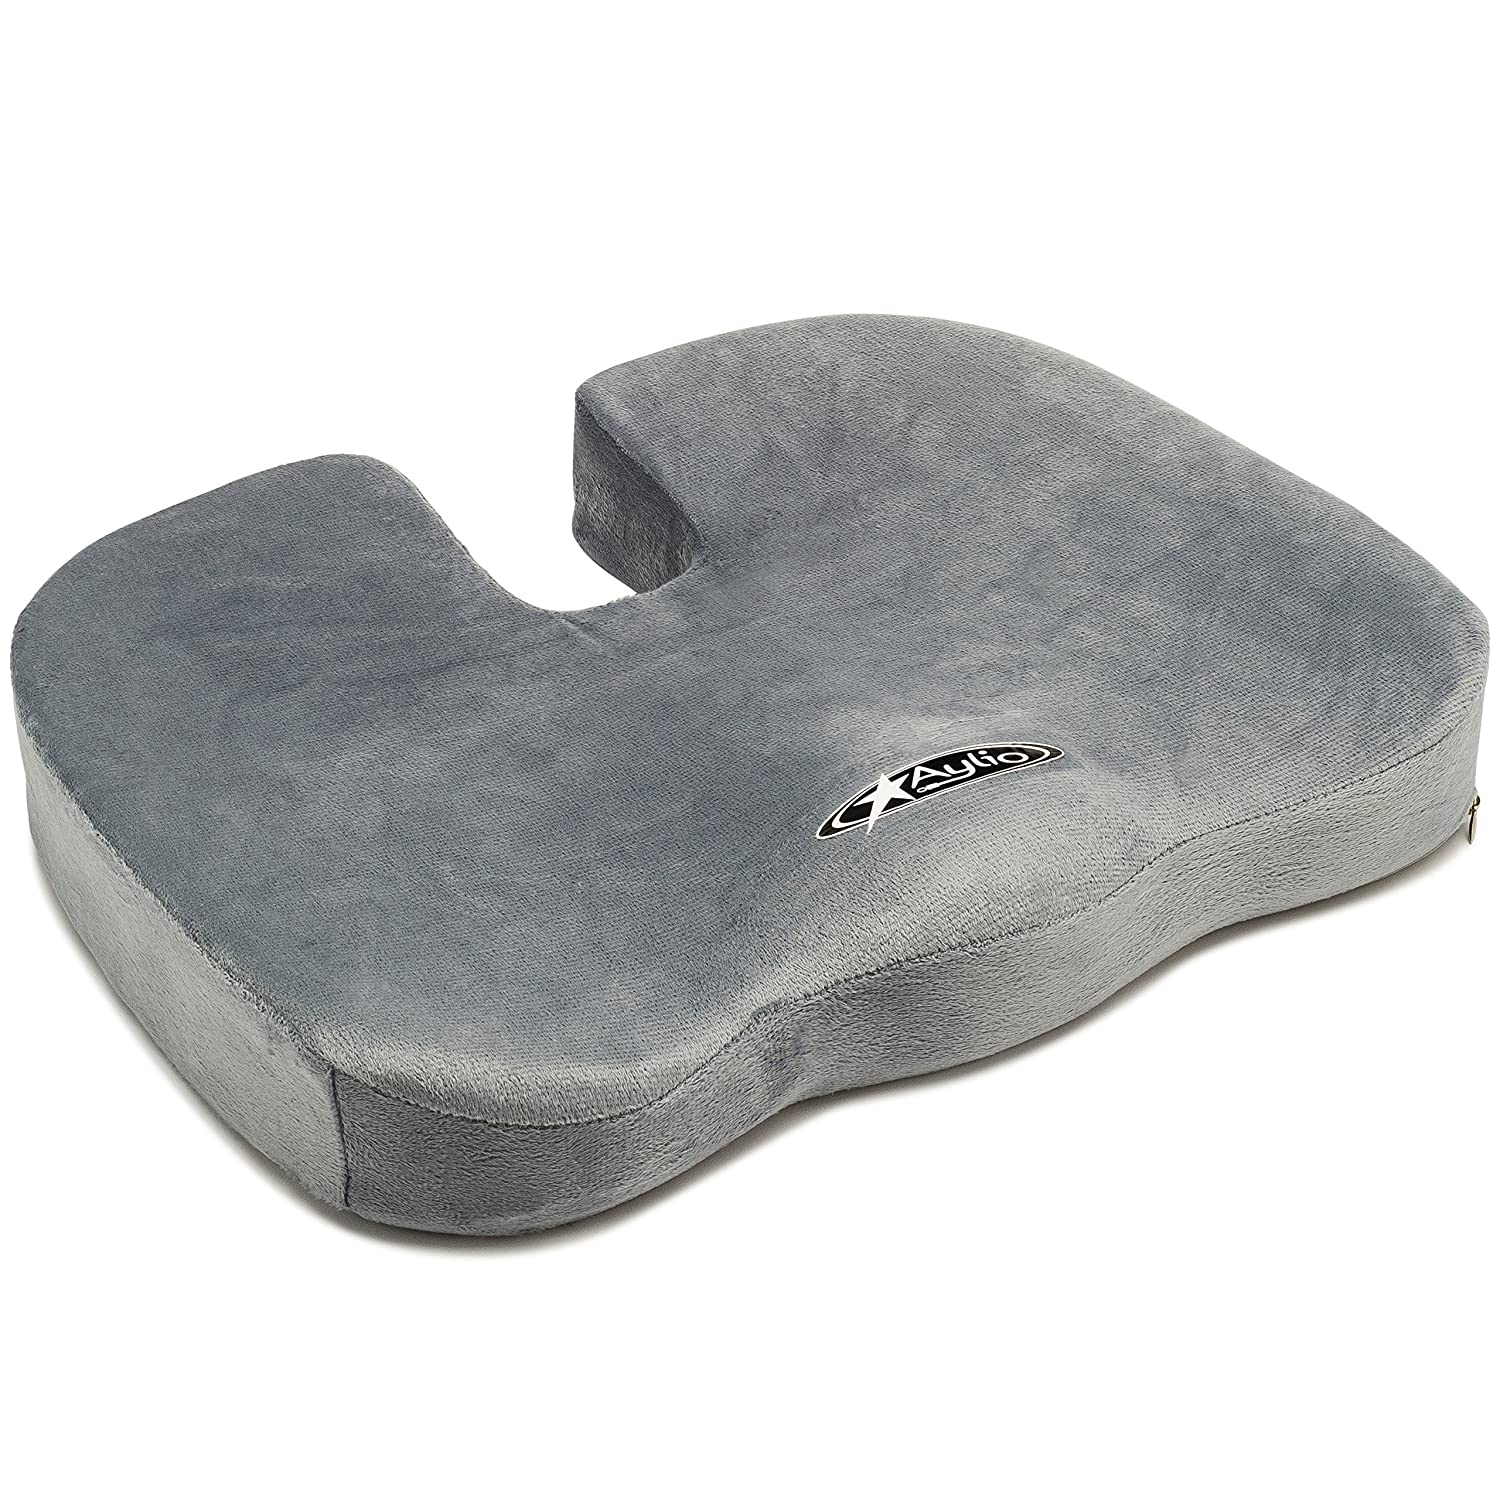 Aylio coccyx seat cushion for back pain relief and for Chair pillow